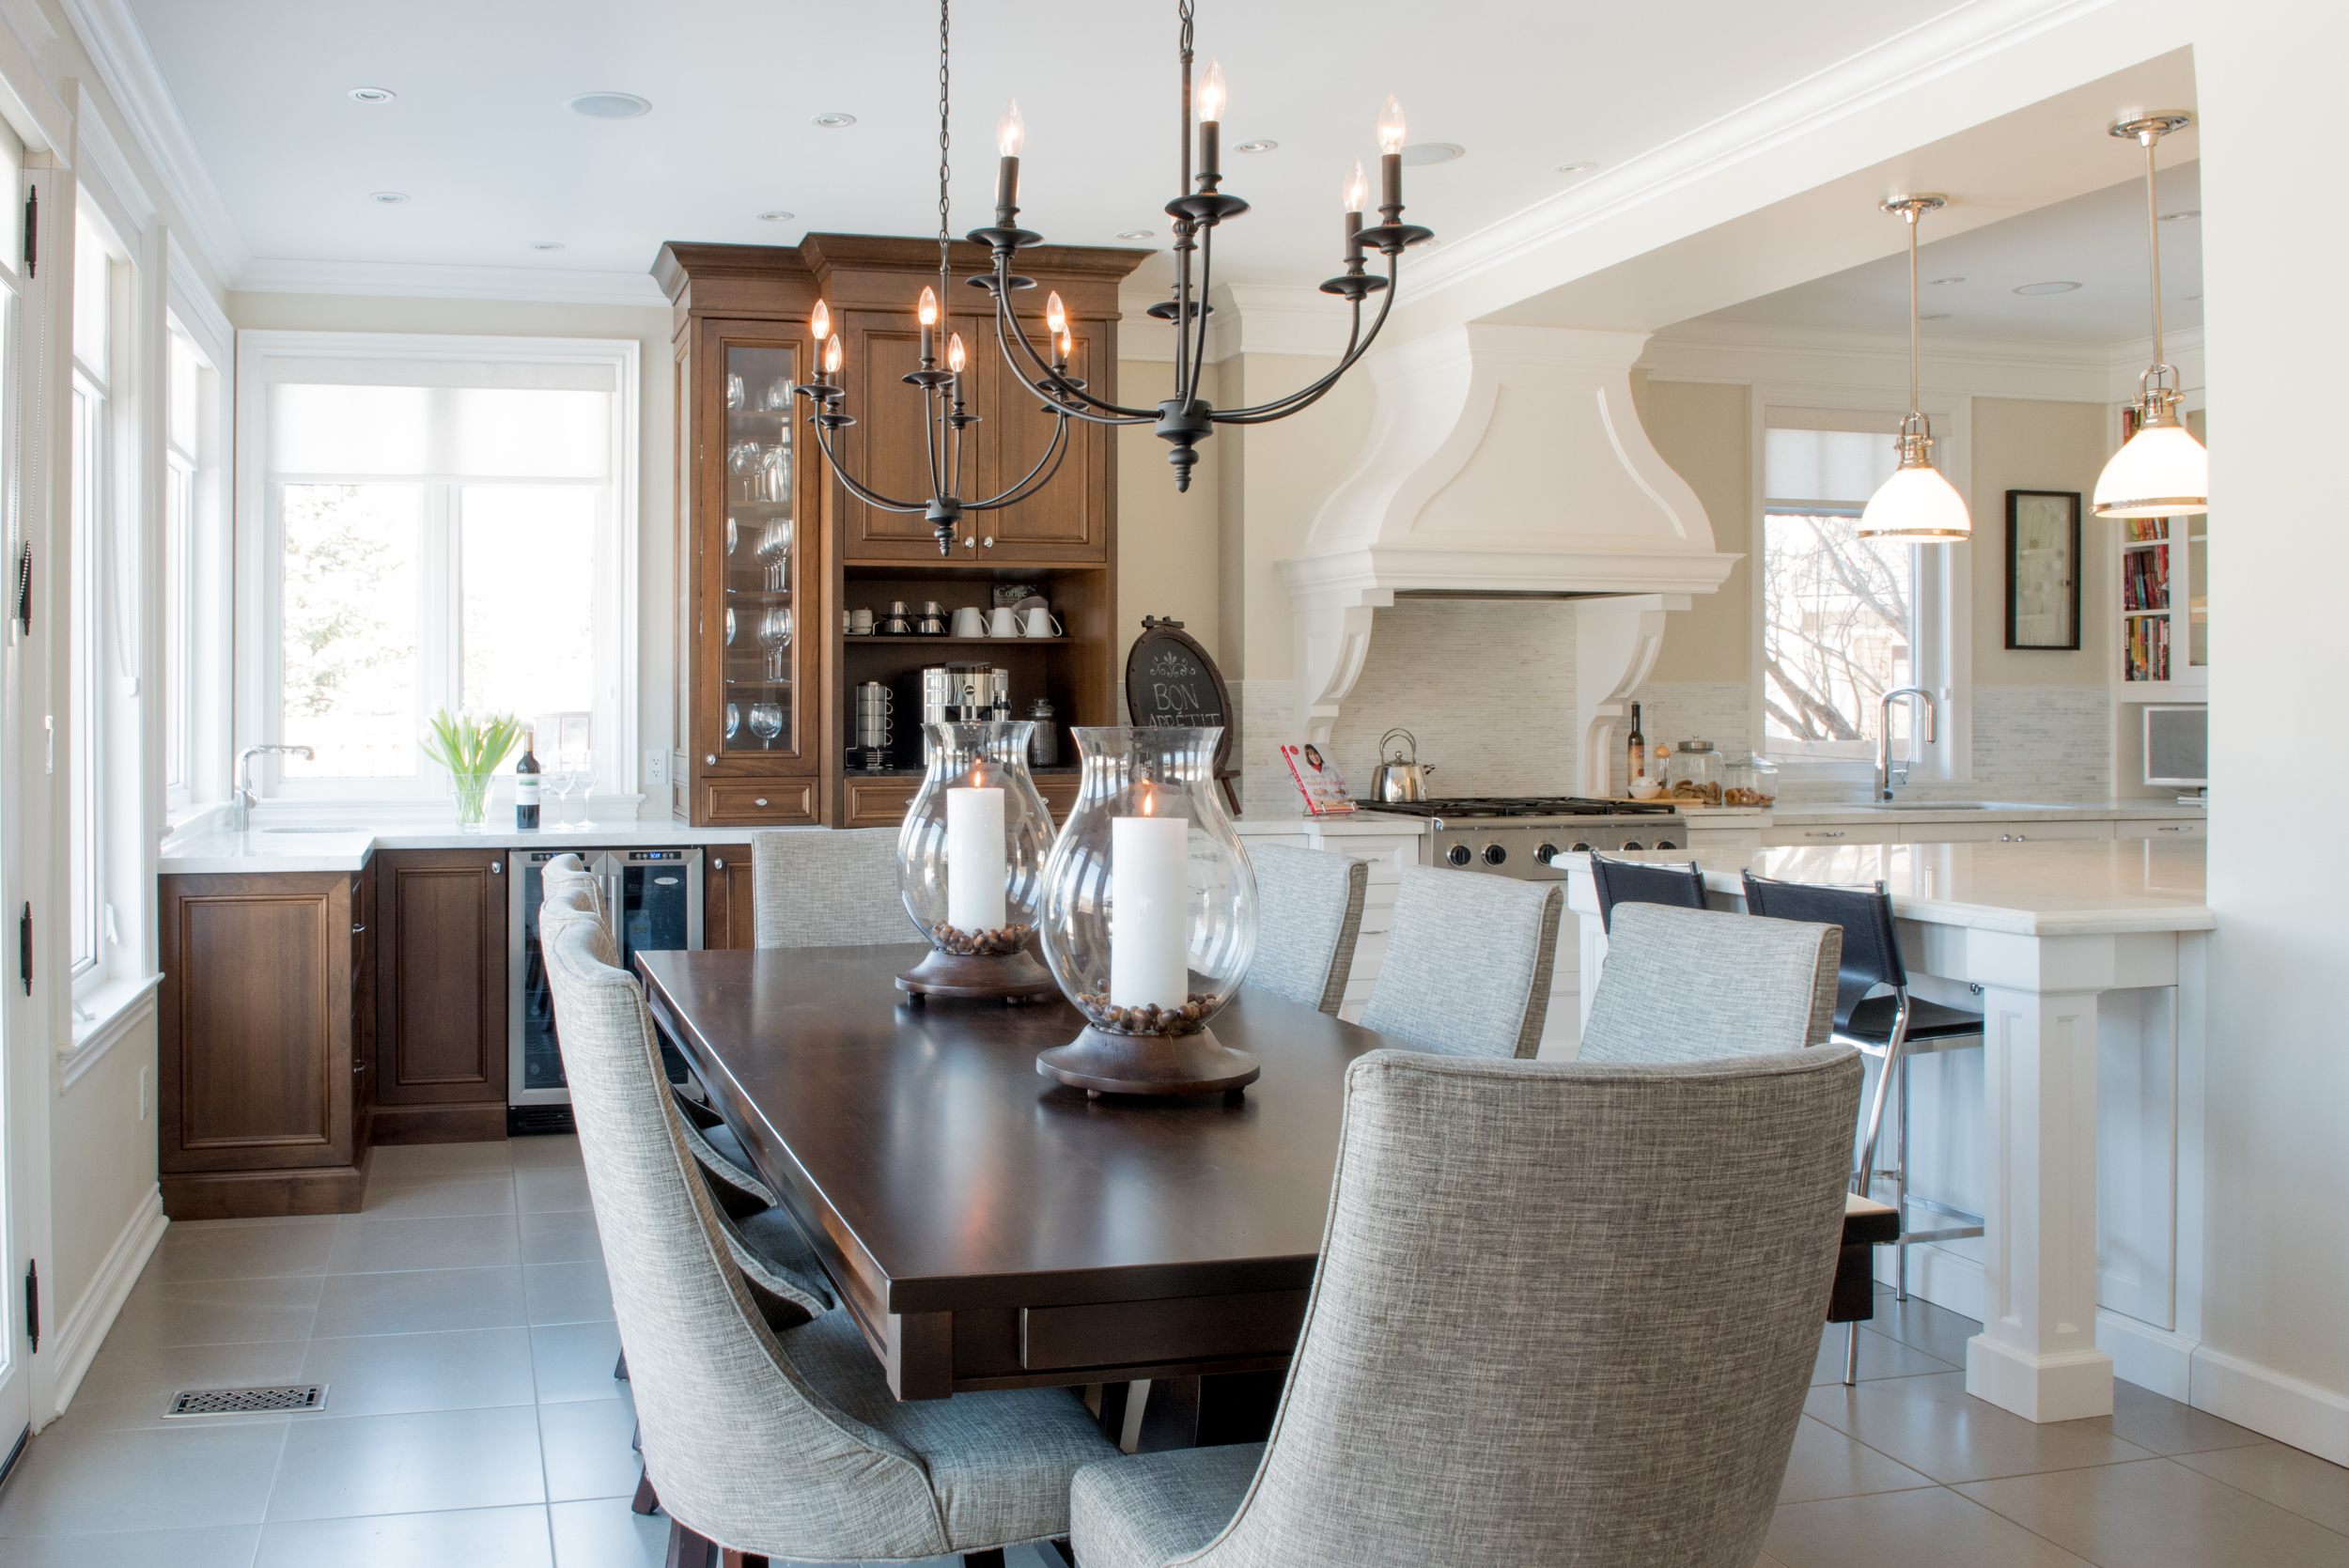 Beautiful Kitchen and Dining Area!